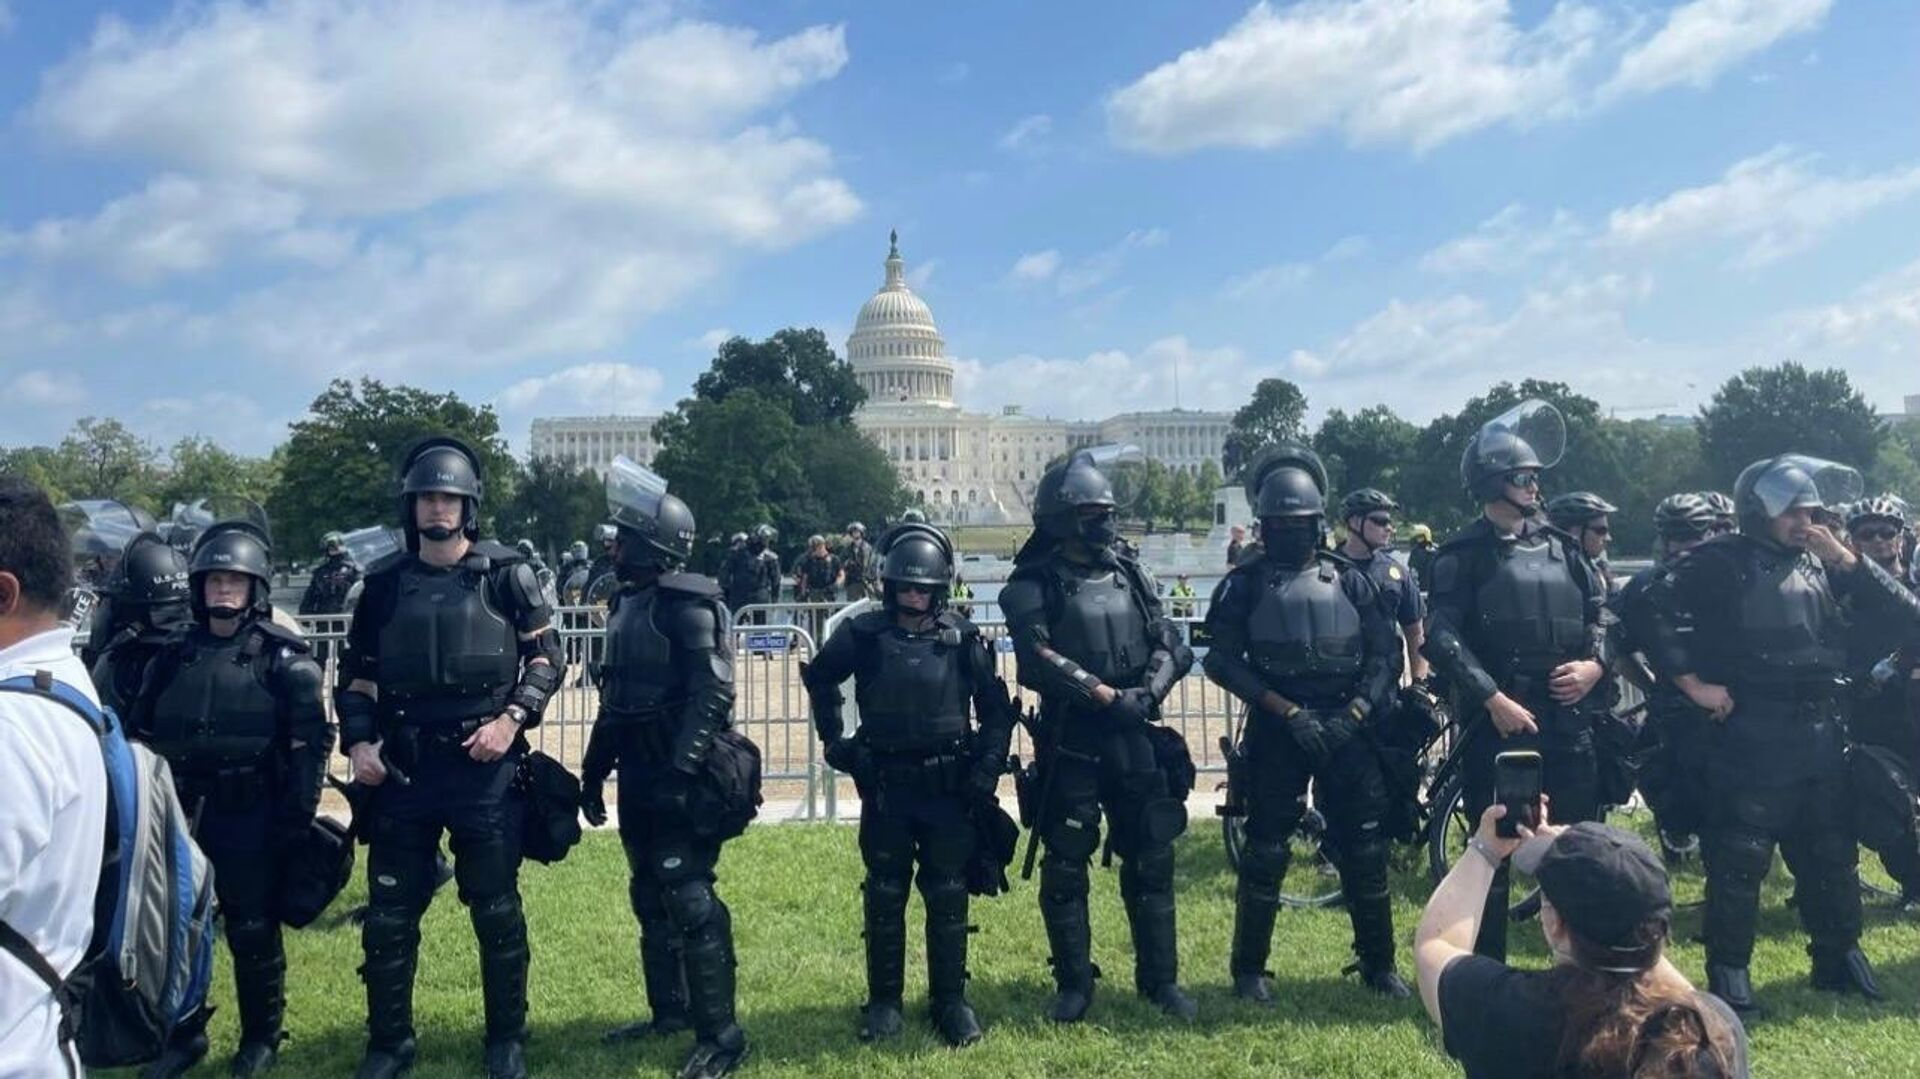 People gathered in DC on September 18 to participate in the Justice for J6 rally in support of people arrested after the January 6 riot - Sputnik International, 1920, 18.09.2021